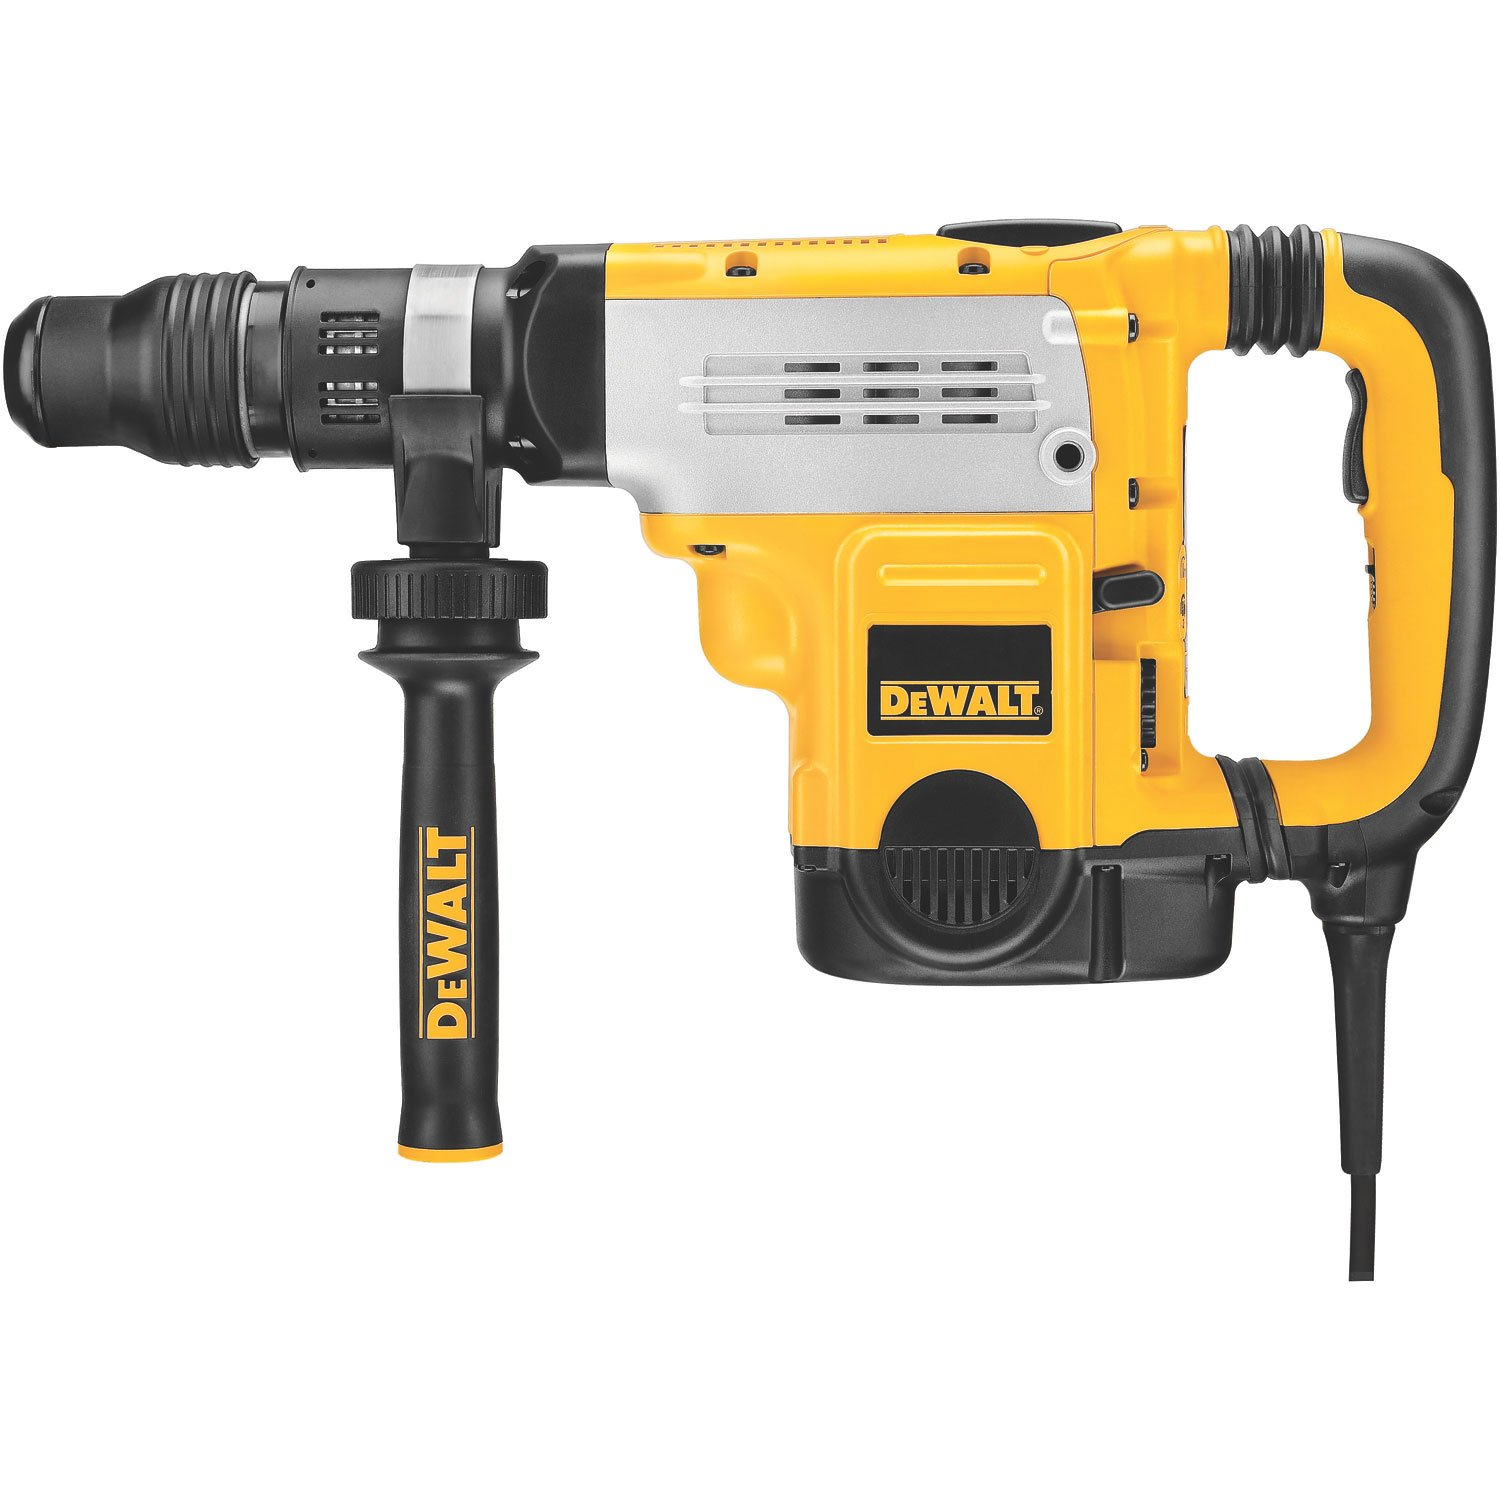 DEWALT D25712K 1-7 8-Inch SDS Max Combination Hammer with CTC